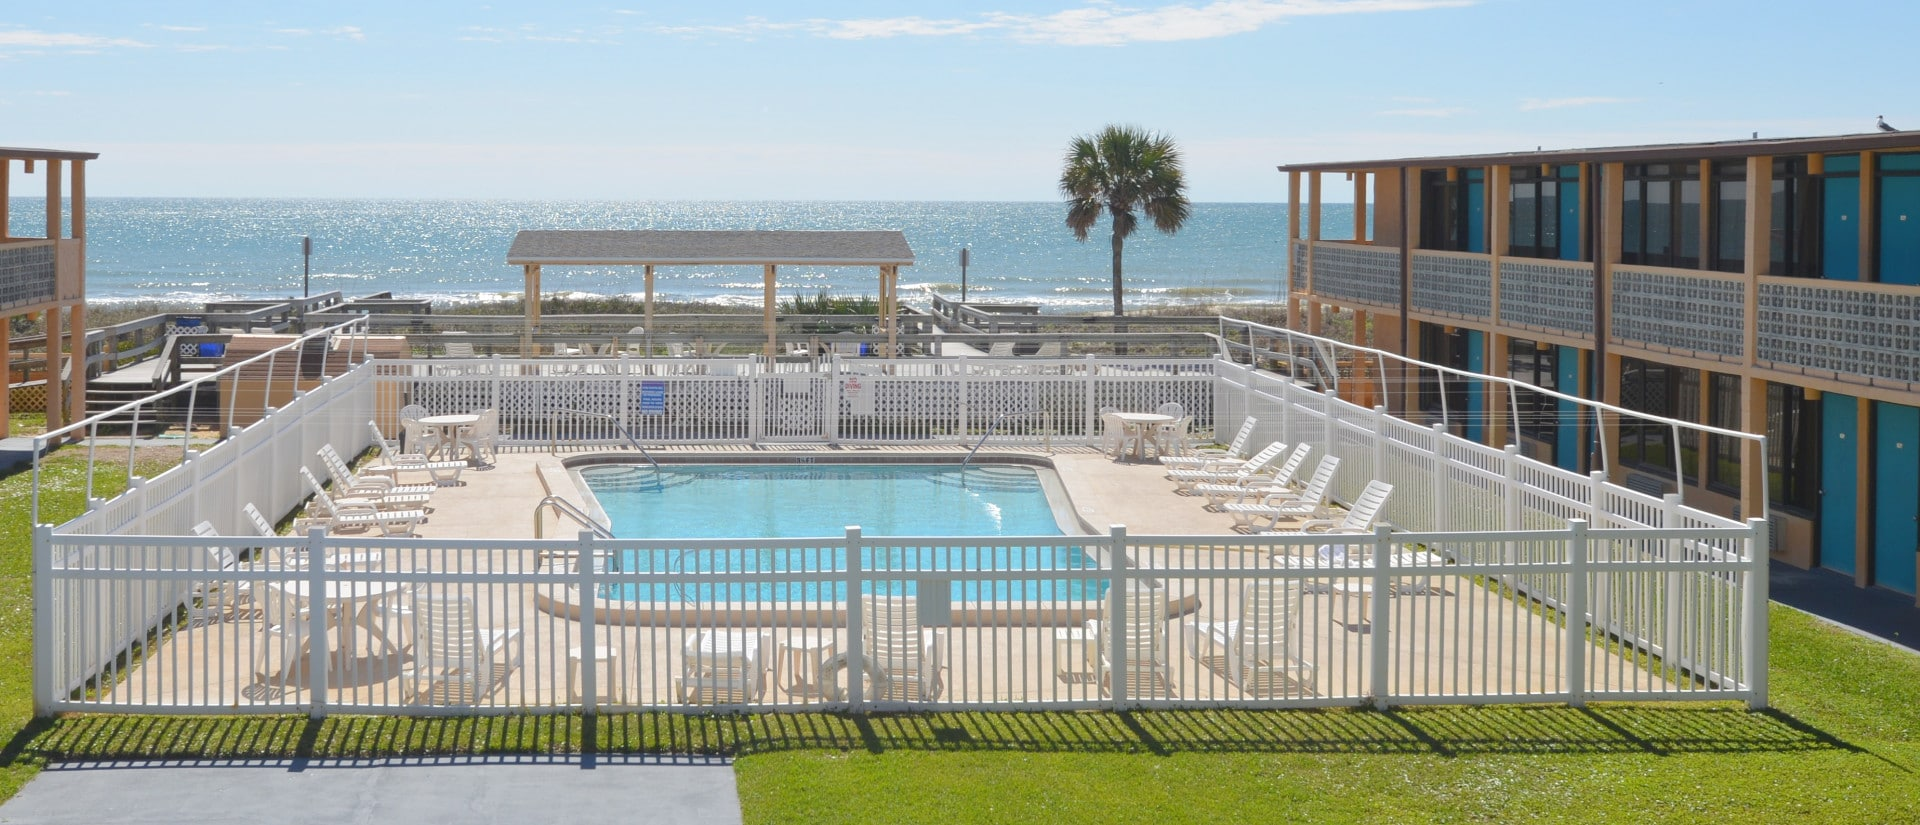 st. george island hotels - Beachfont view Buccaneer inn